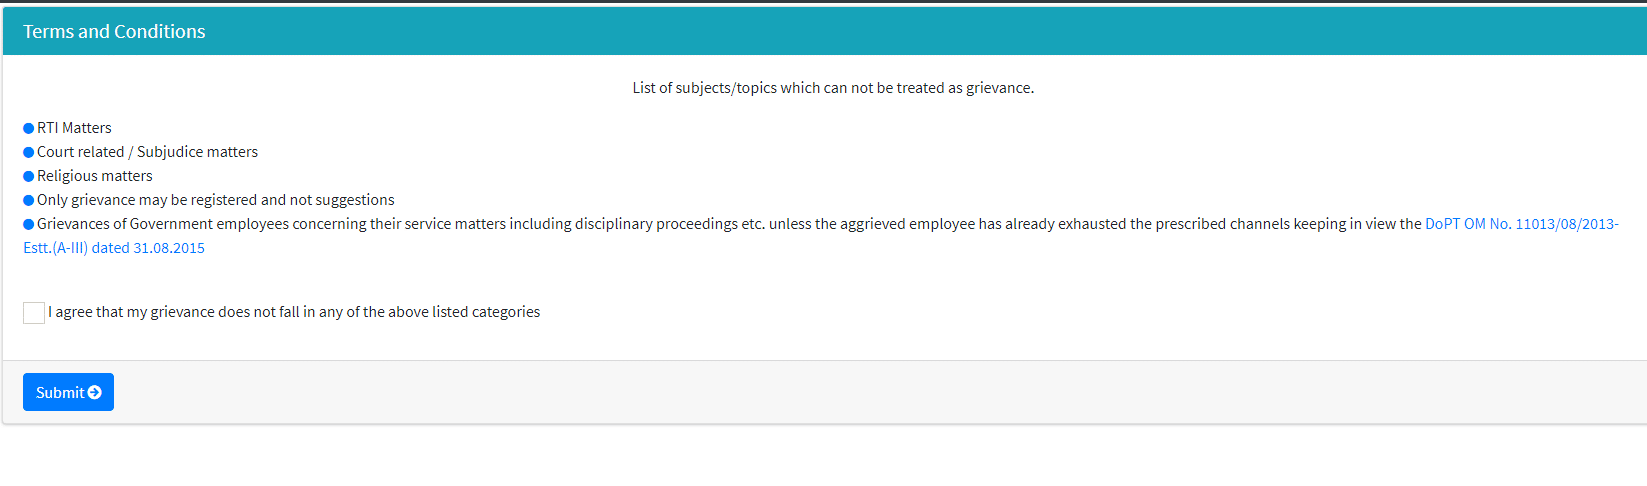 terms and conditions pm complaint portal